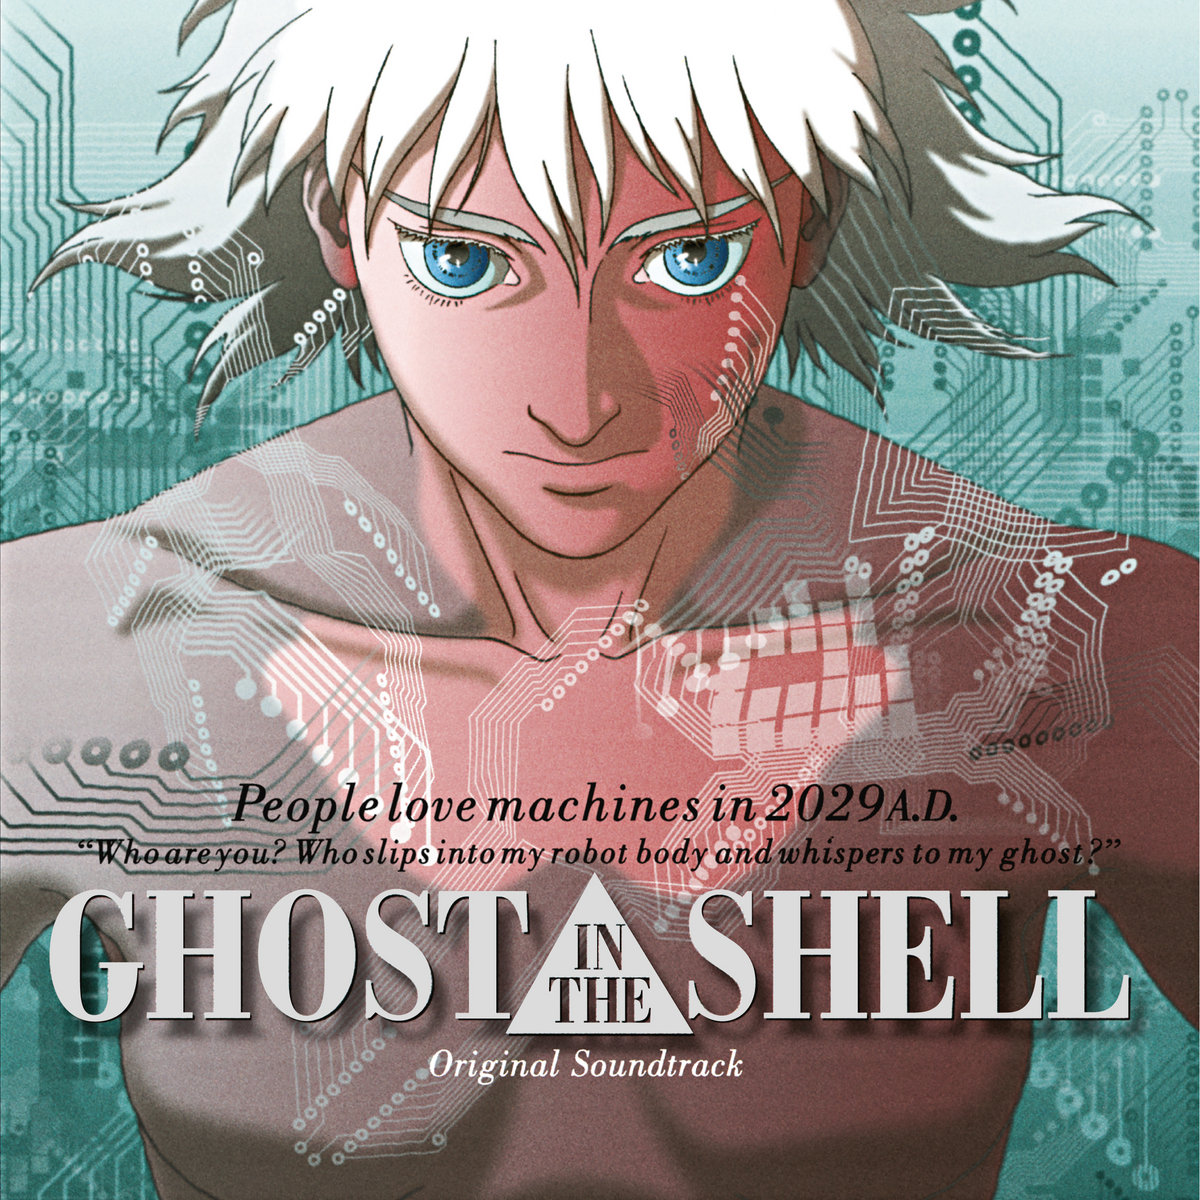 Ghost In The Shell Original Soundtrack Kenji Kawai Wrwtfww Records